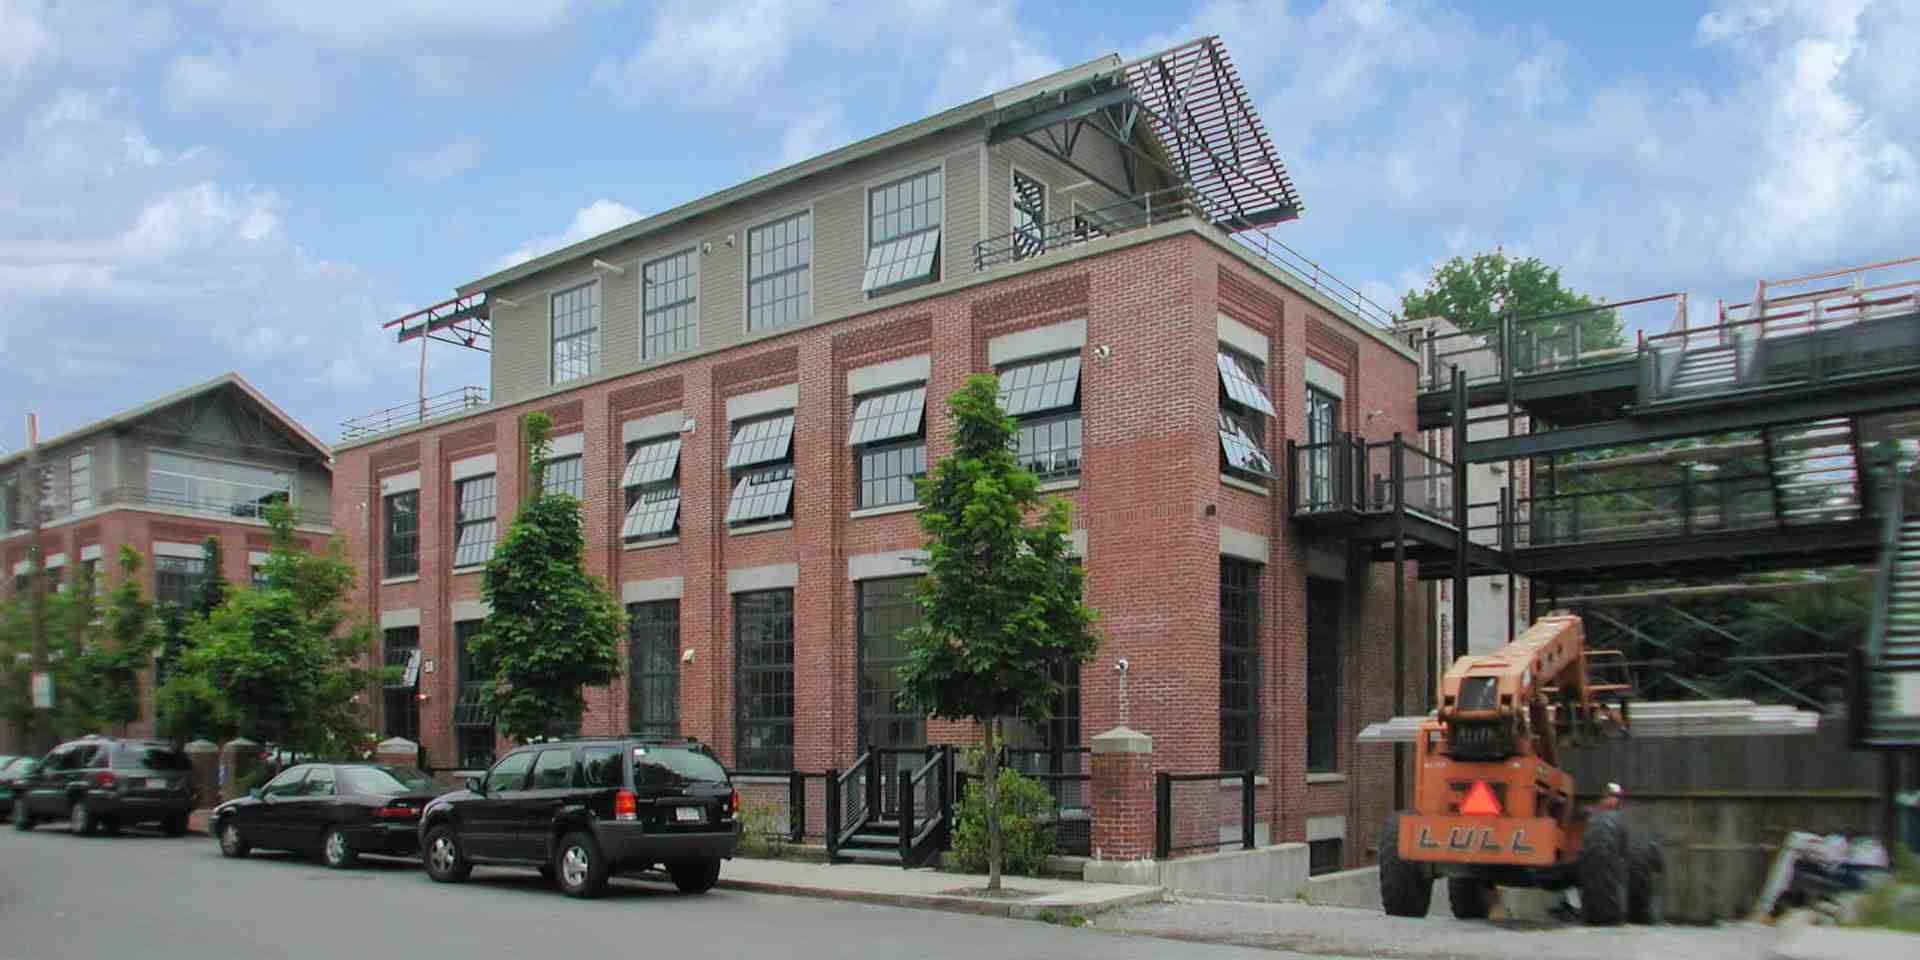 Building Five Lofts